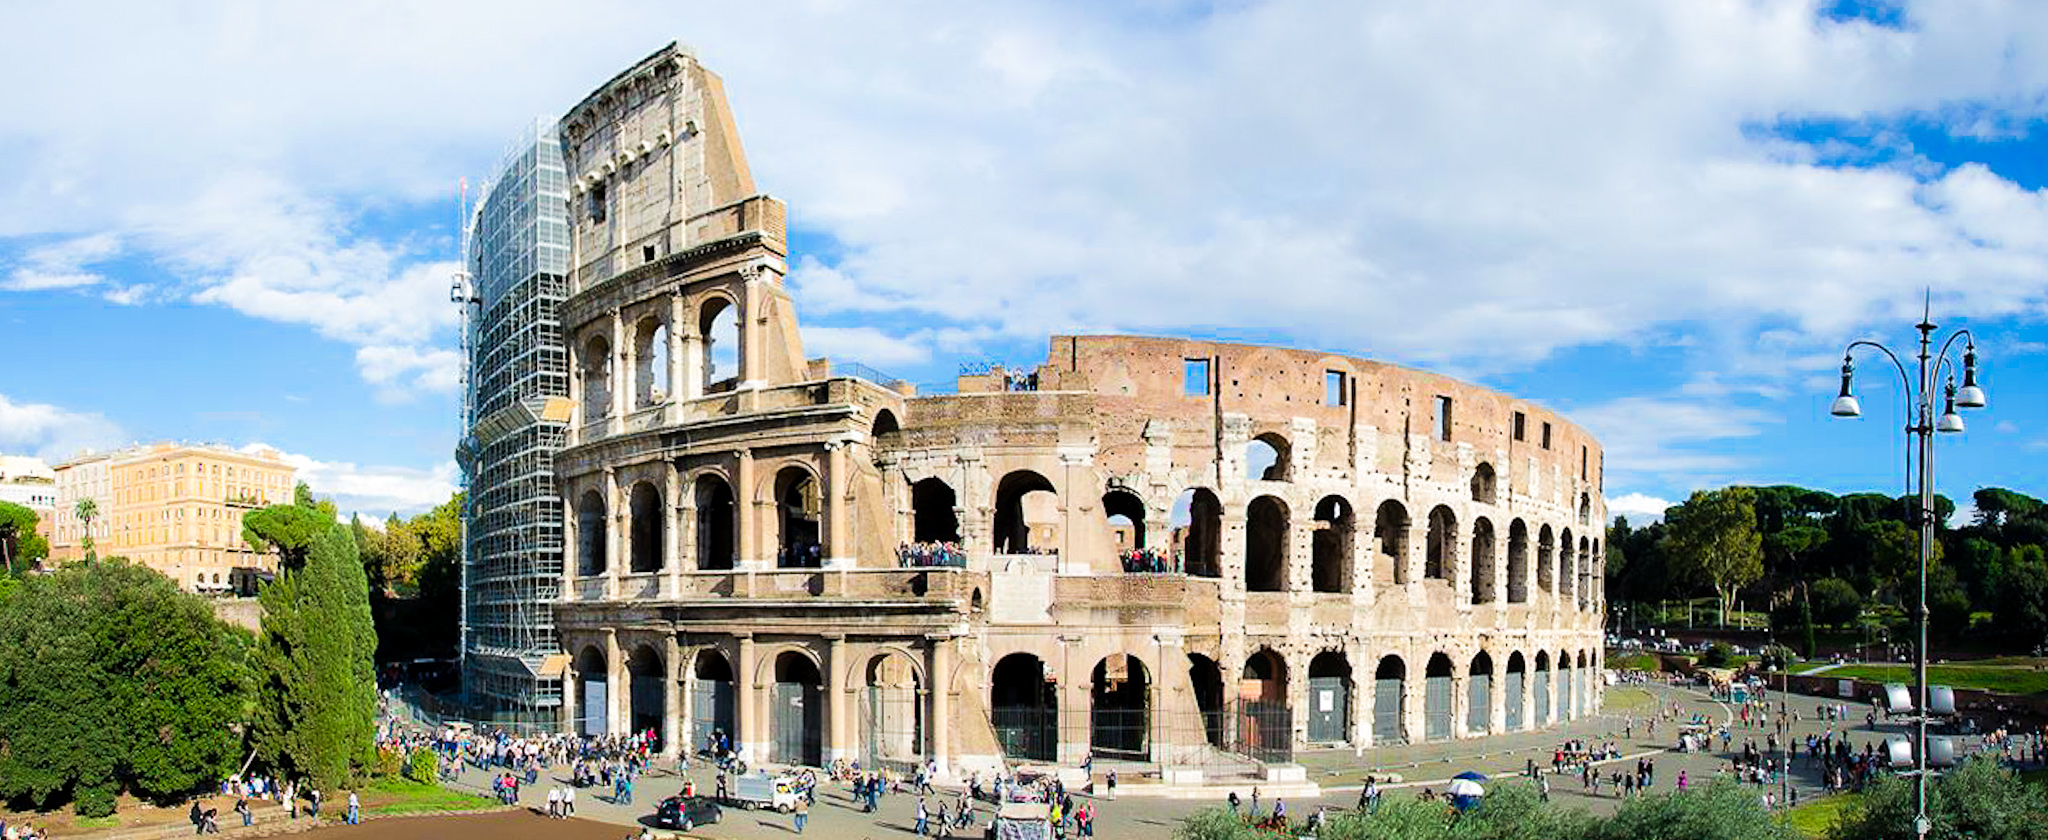 the coliseum of rome essay The construction of the colosseum began in 72 ce and finished in 80 ce, in rome, italy sharing similar iconography with chartres cathedral, built between 1194-1250 ce in france, both the colosseum and cathedral practice the use of groin vaults the colosseum consists of 80 barrel vaults along each level of the structure and when.